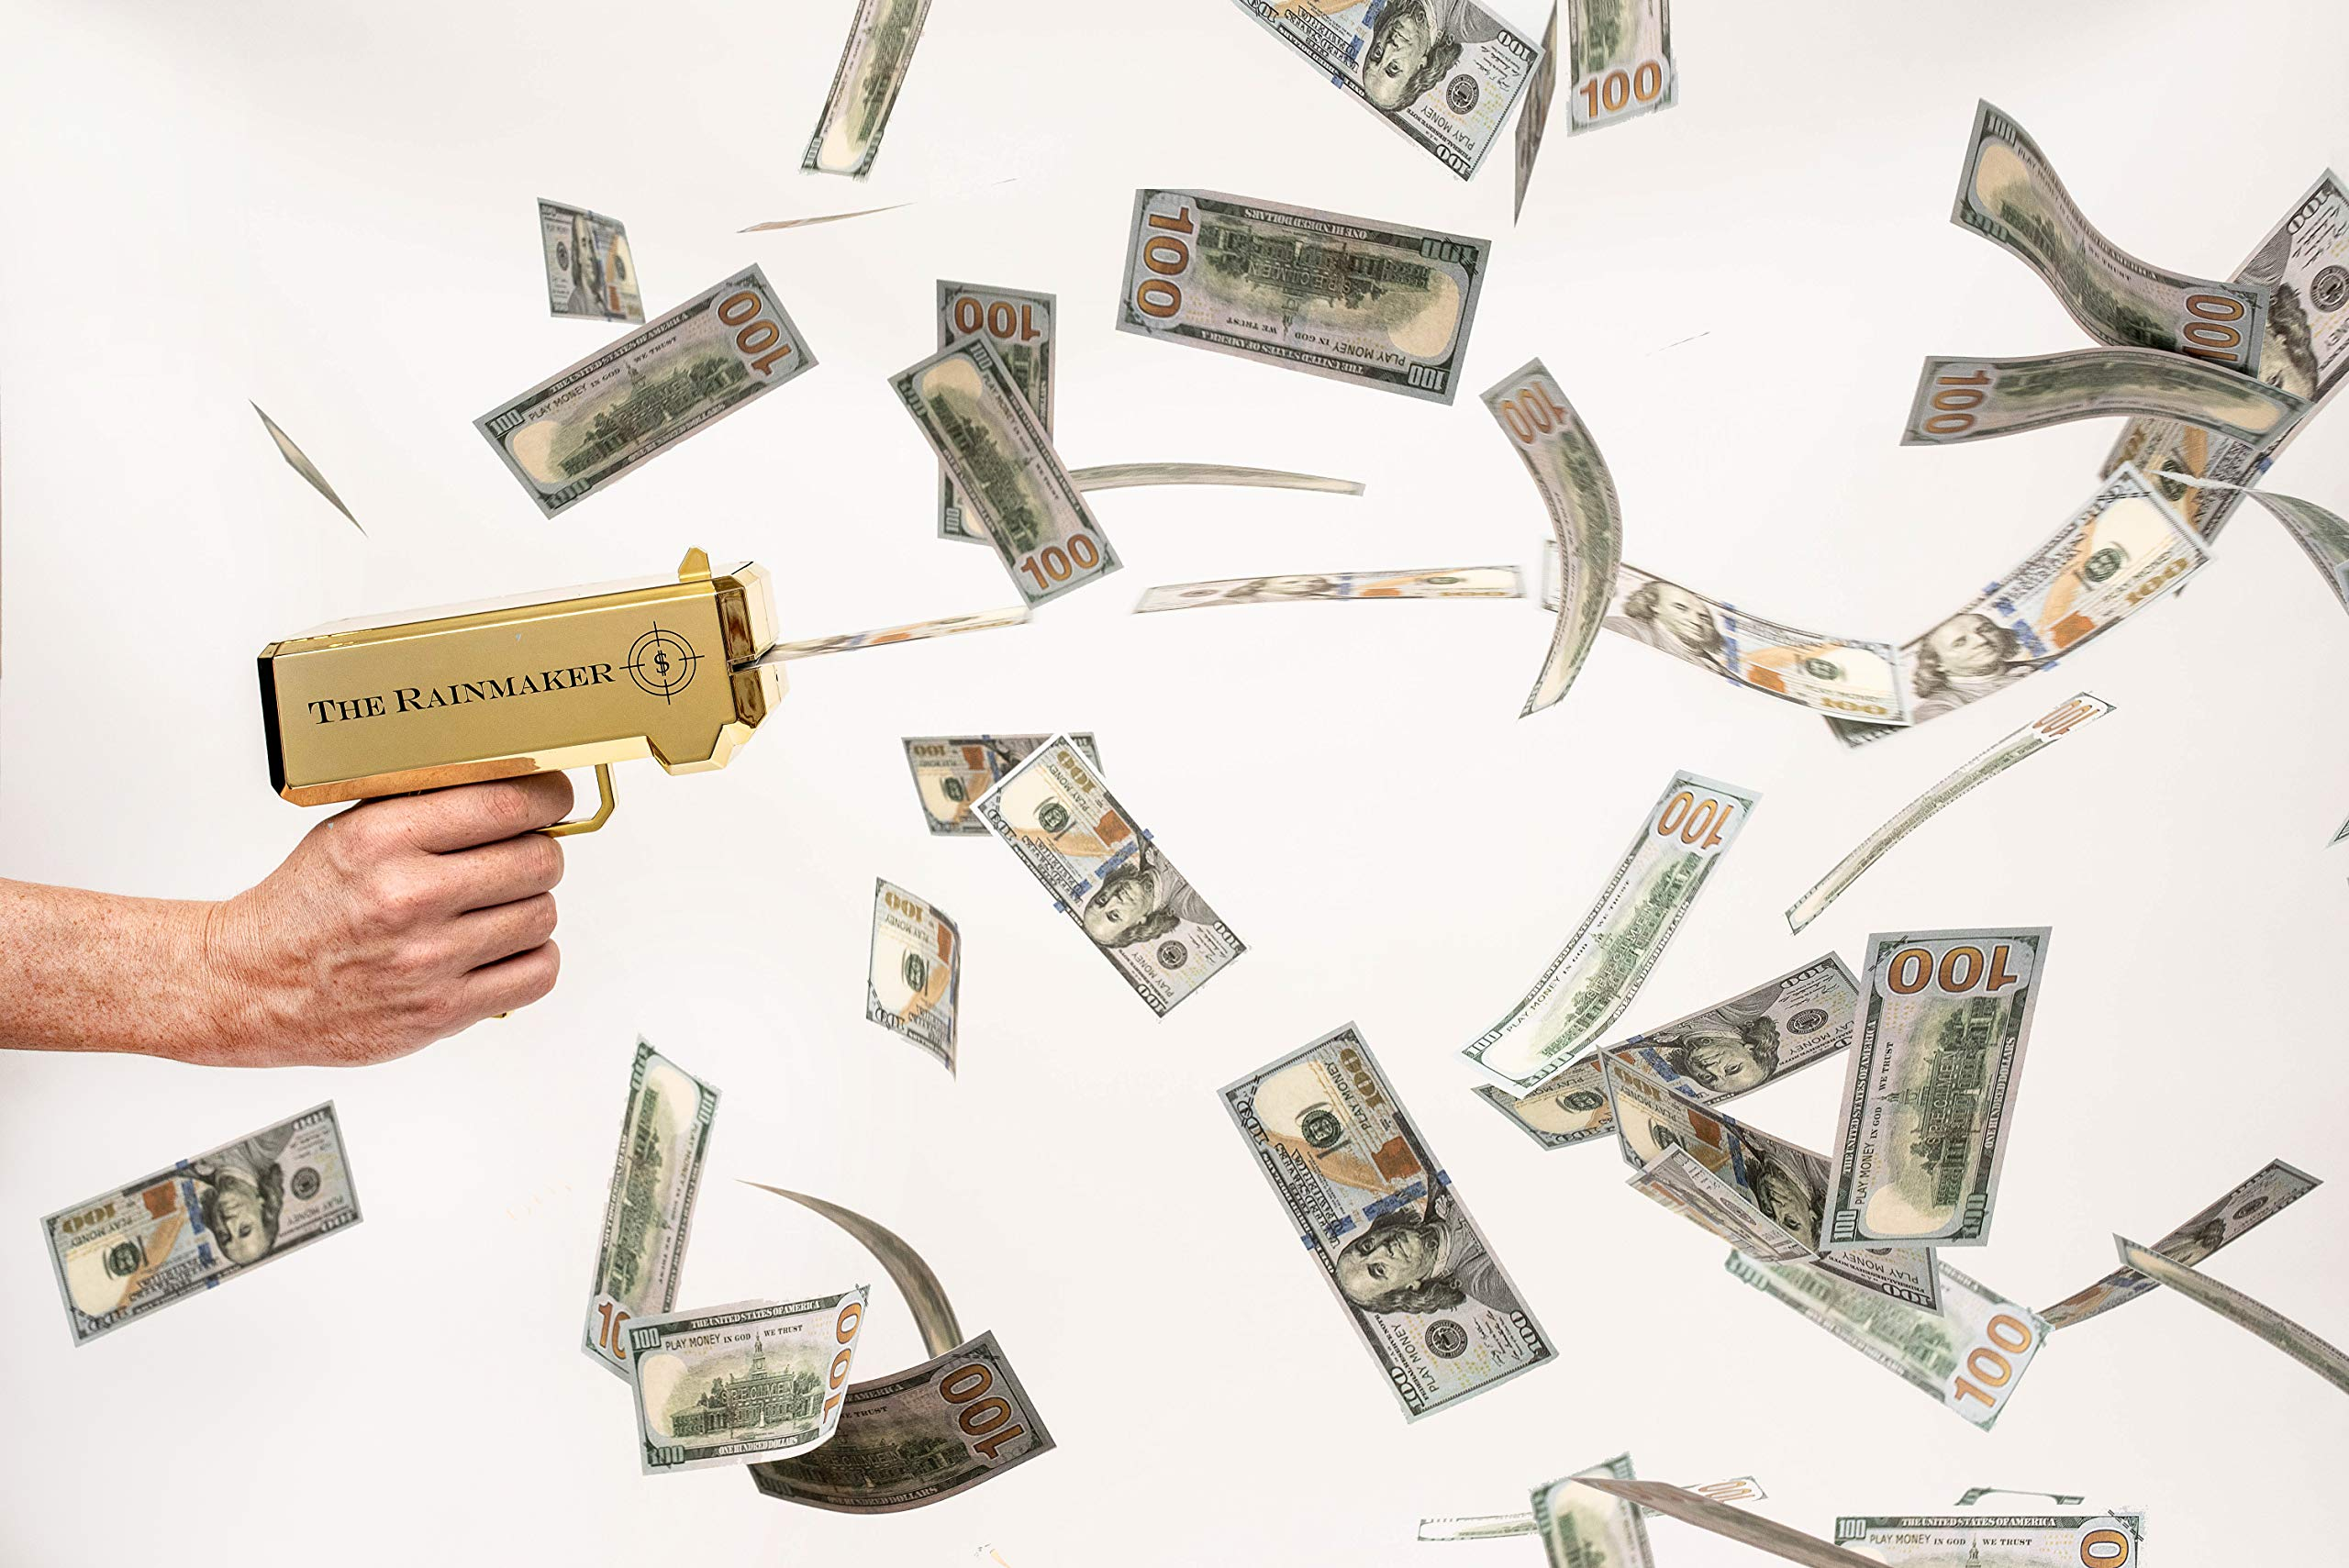 All Out Solutions The Rainmaker Money Gun | $10,000 Play Money | Money Looks Real! | Metallic Gold | Impress Your Friends with This Fun Party Toy | Shoot Cash and Make It Rain by All Out Solutions (Image #2)